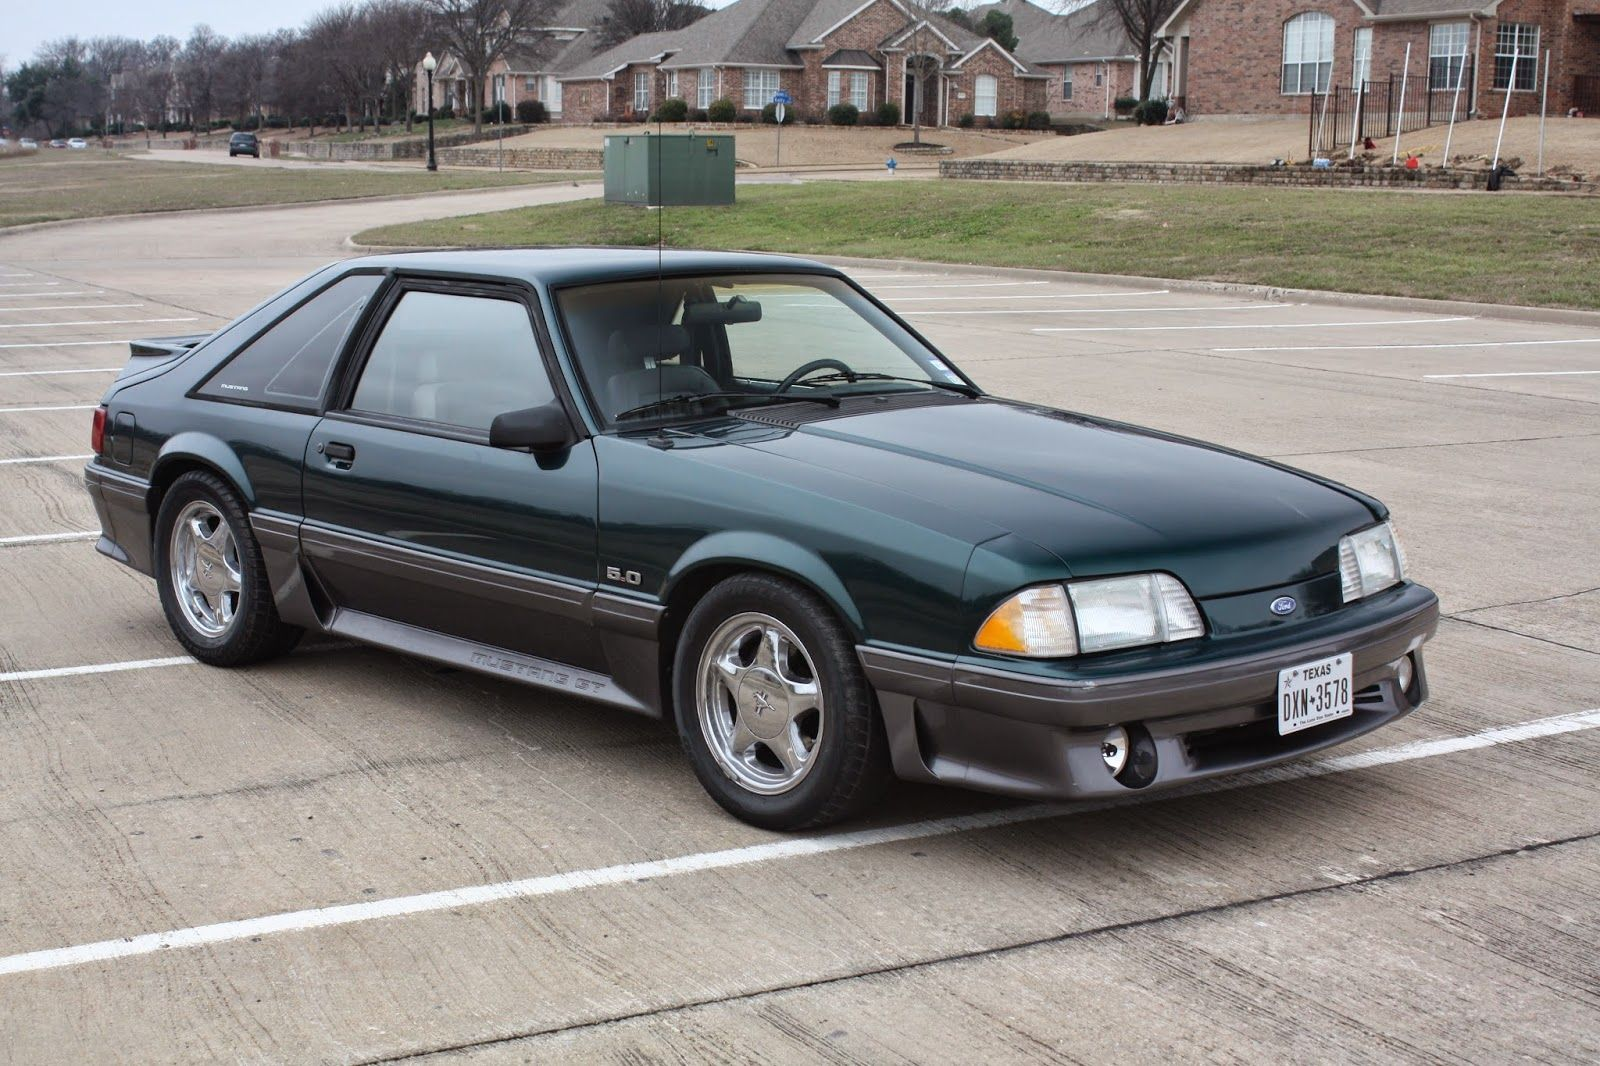 1991 Mustang Gt 5 0 5spd Emerald Green Found This On Craigslist Love This Color Has Off Road Hpipe Flows Masters J Fox Body Mustang Green Mustang Mustang Gt